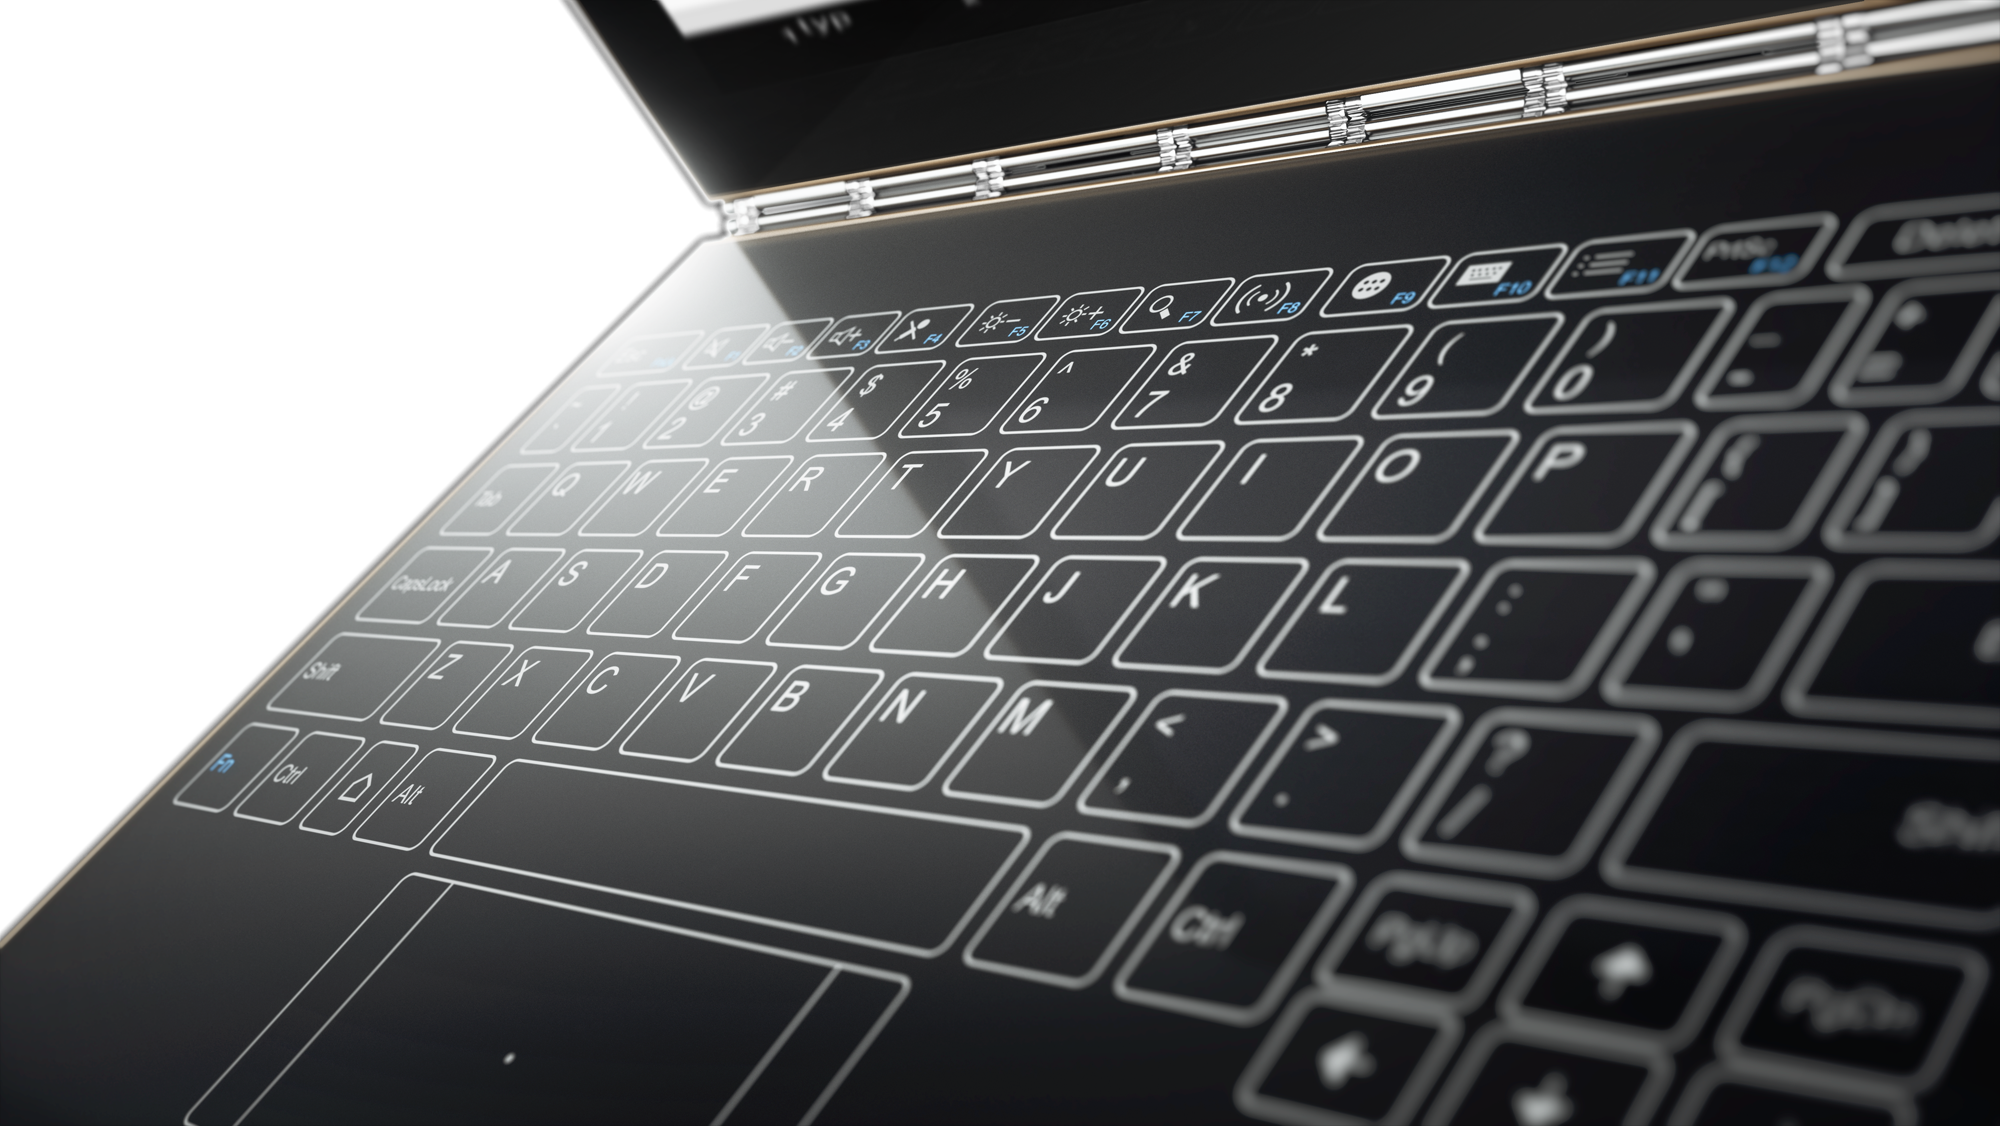 Drawing keyboard electronic computer. Lenovo launches yoga book